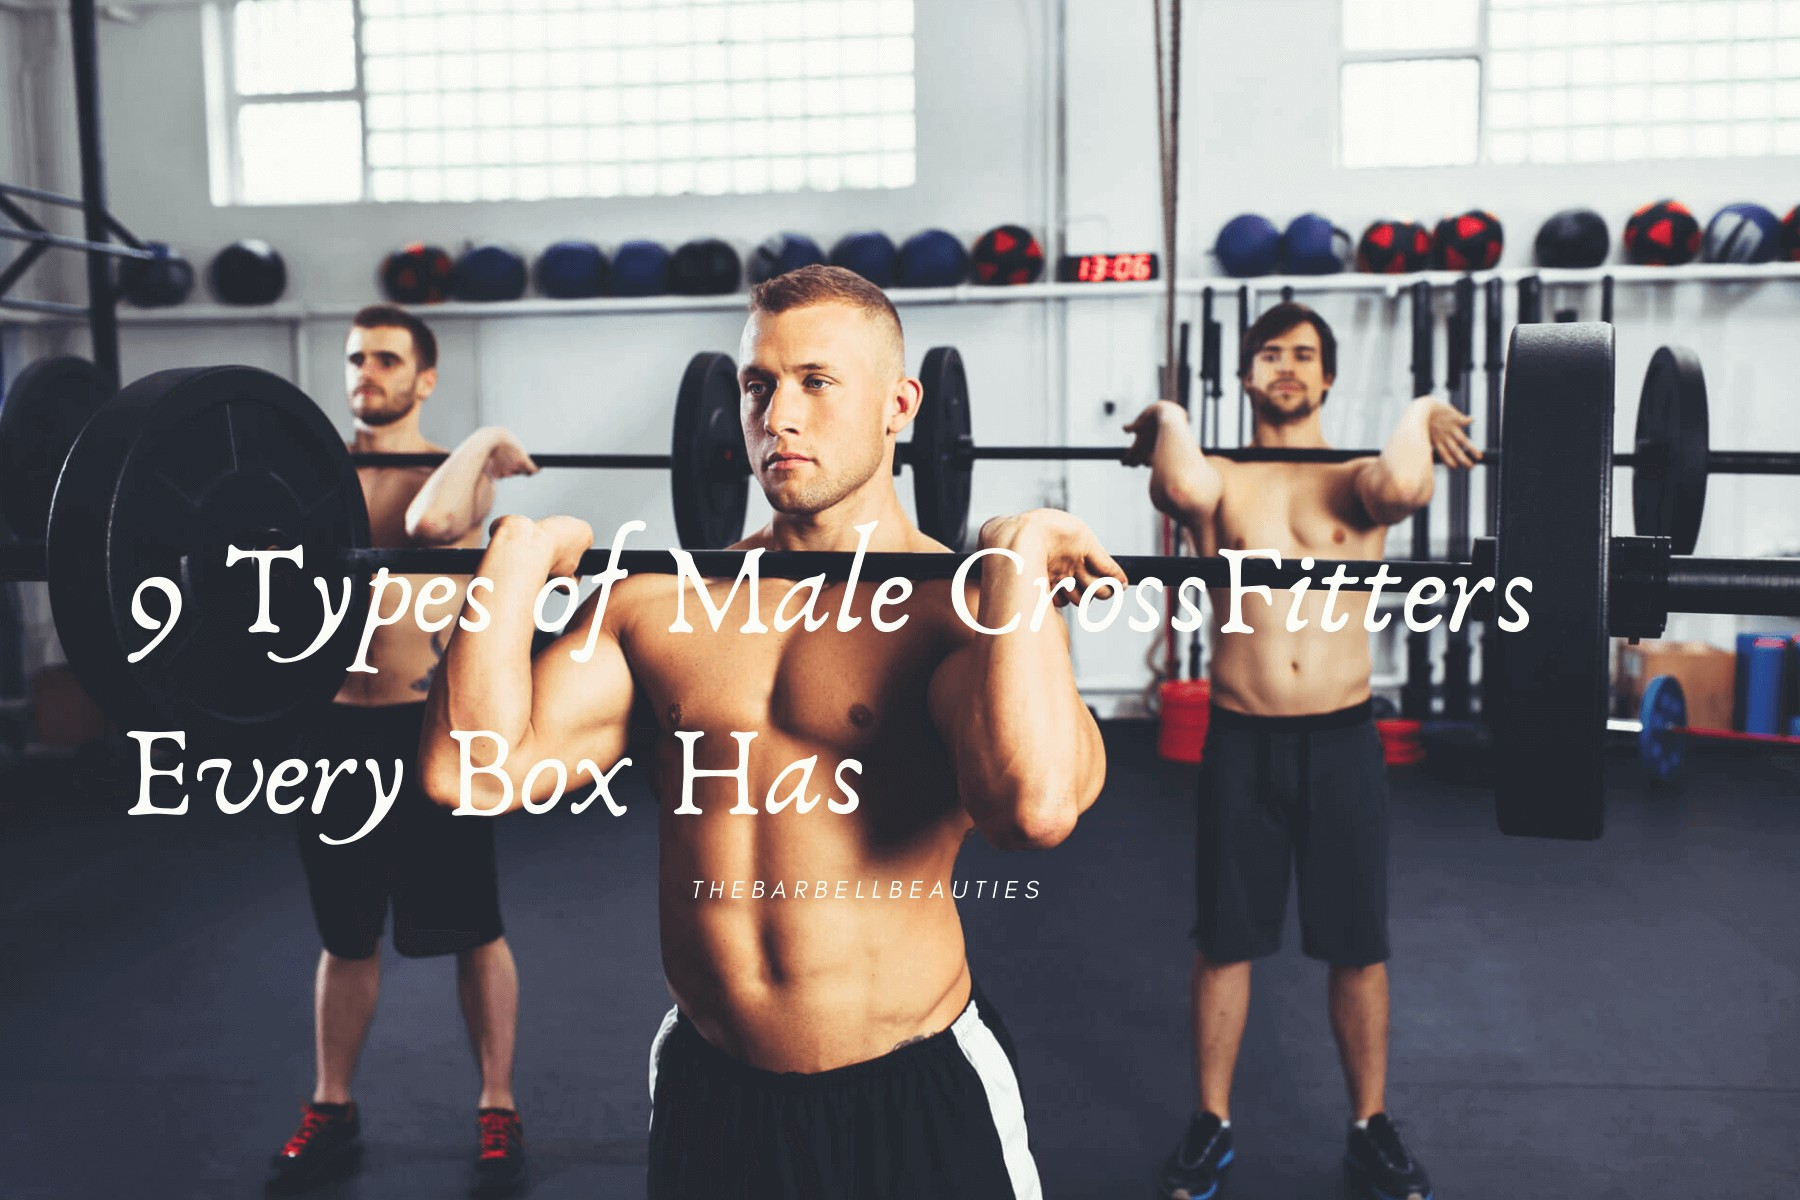 9 Types of Male Athletes Every Box Has